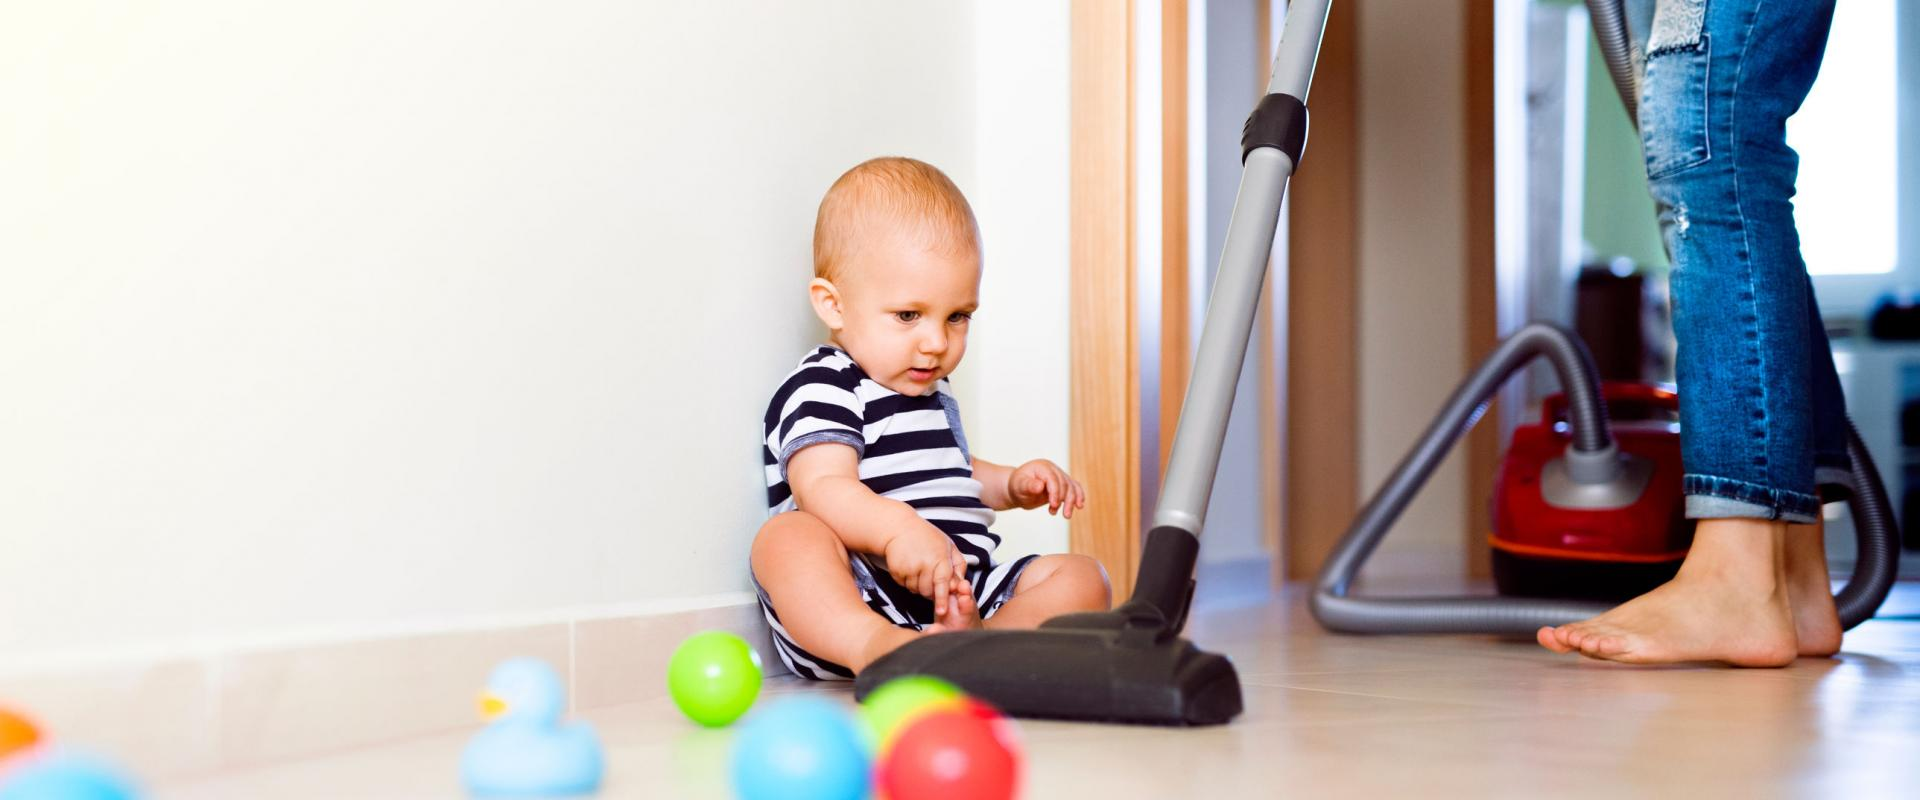 The Right Way to Clean Baby Toys